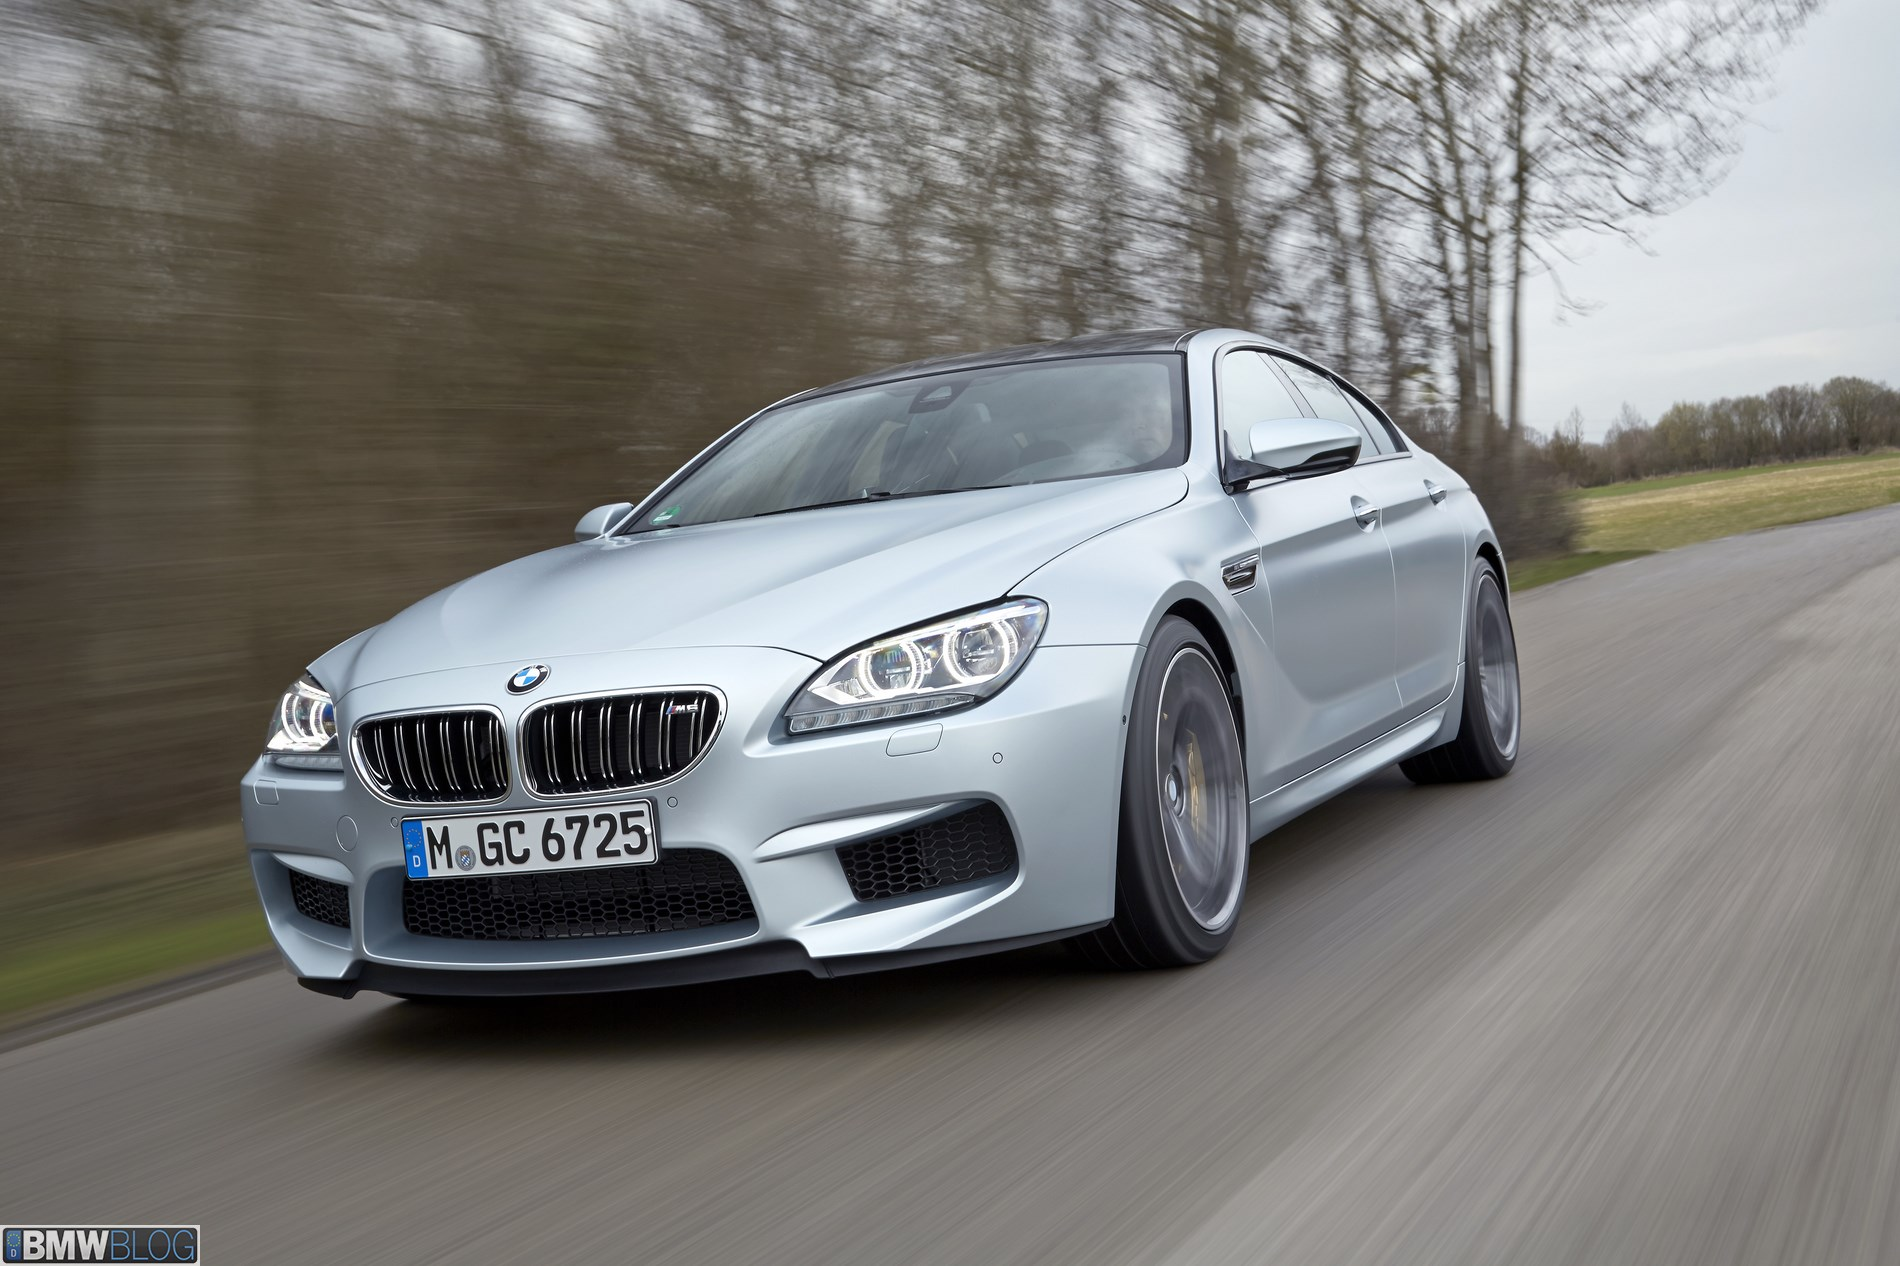 2014 bmw m6 gran coupe images